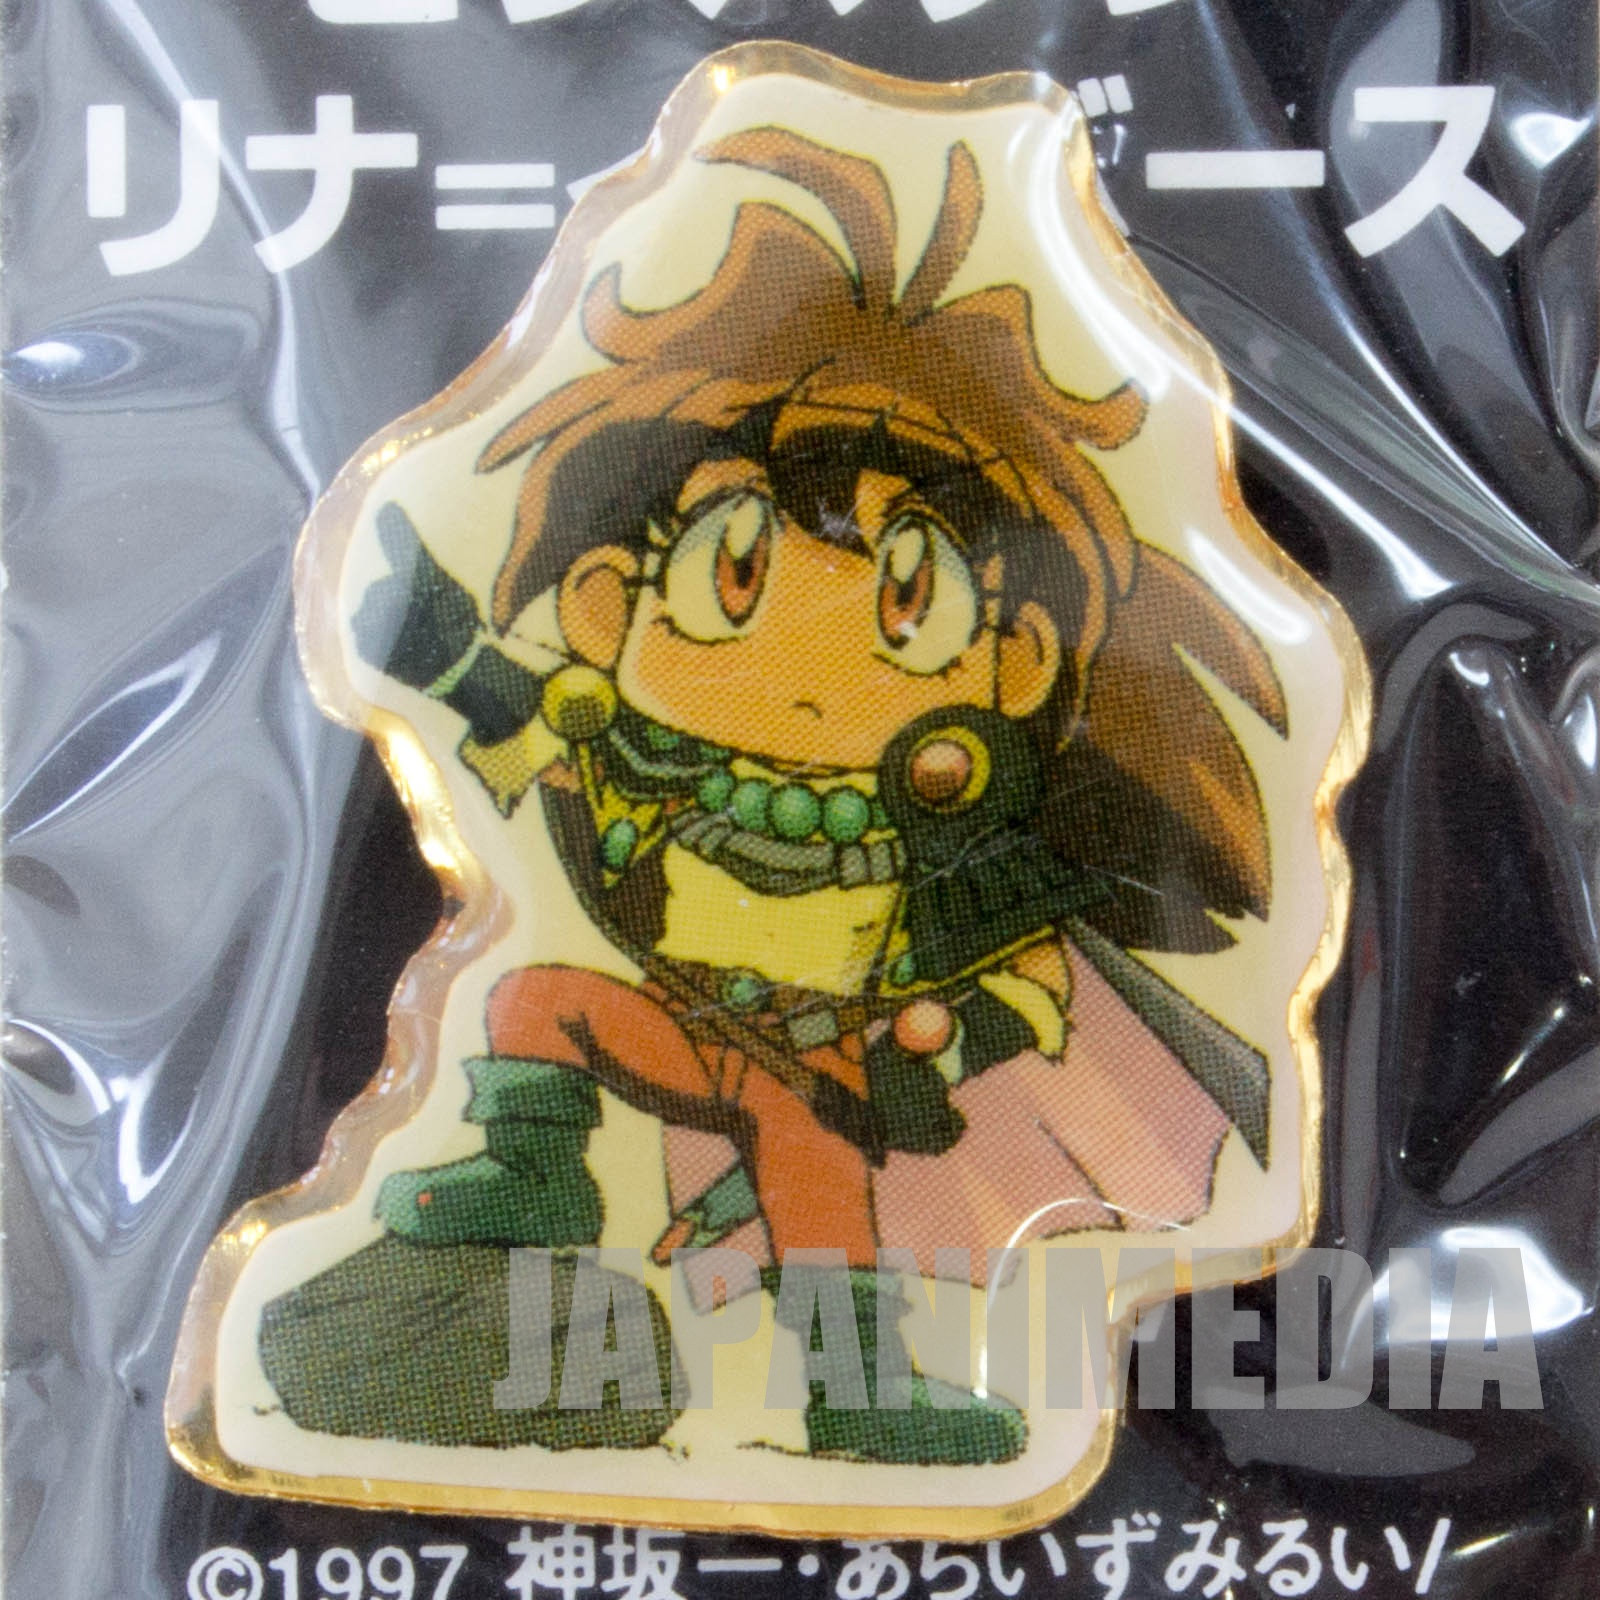 Slayers Great Lina Inverse Pins MOVIE JAPAN ANIME MANGA